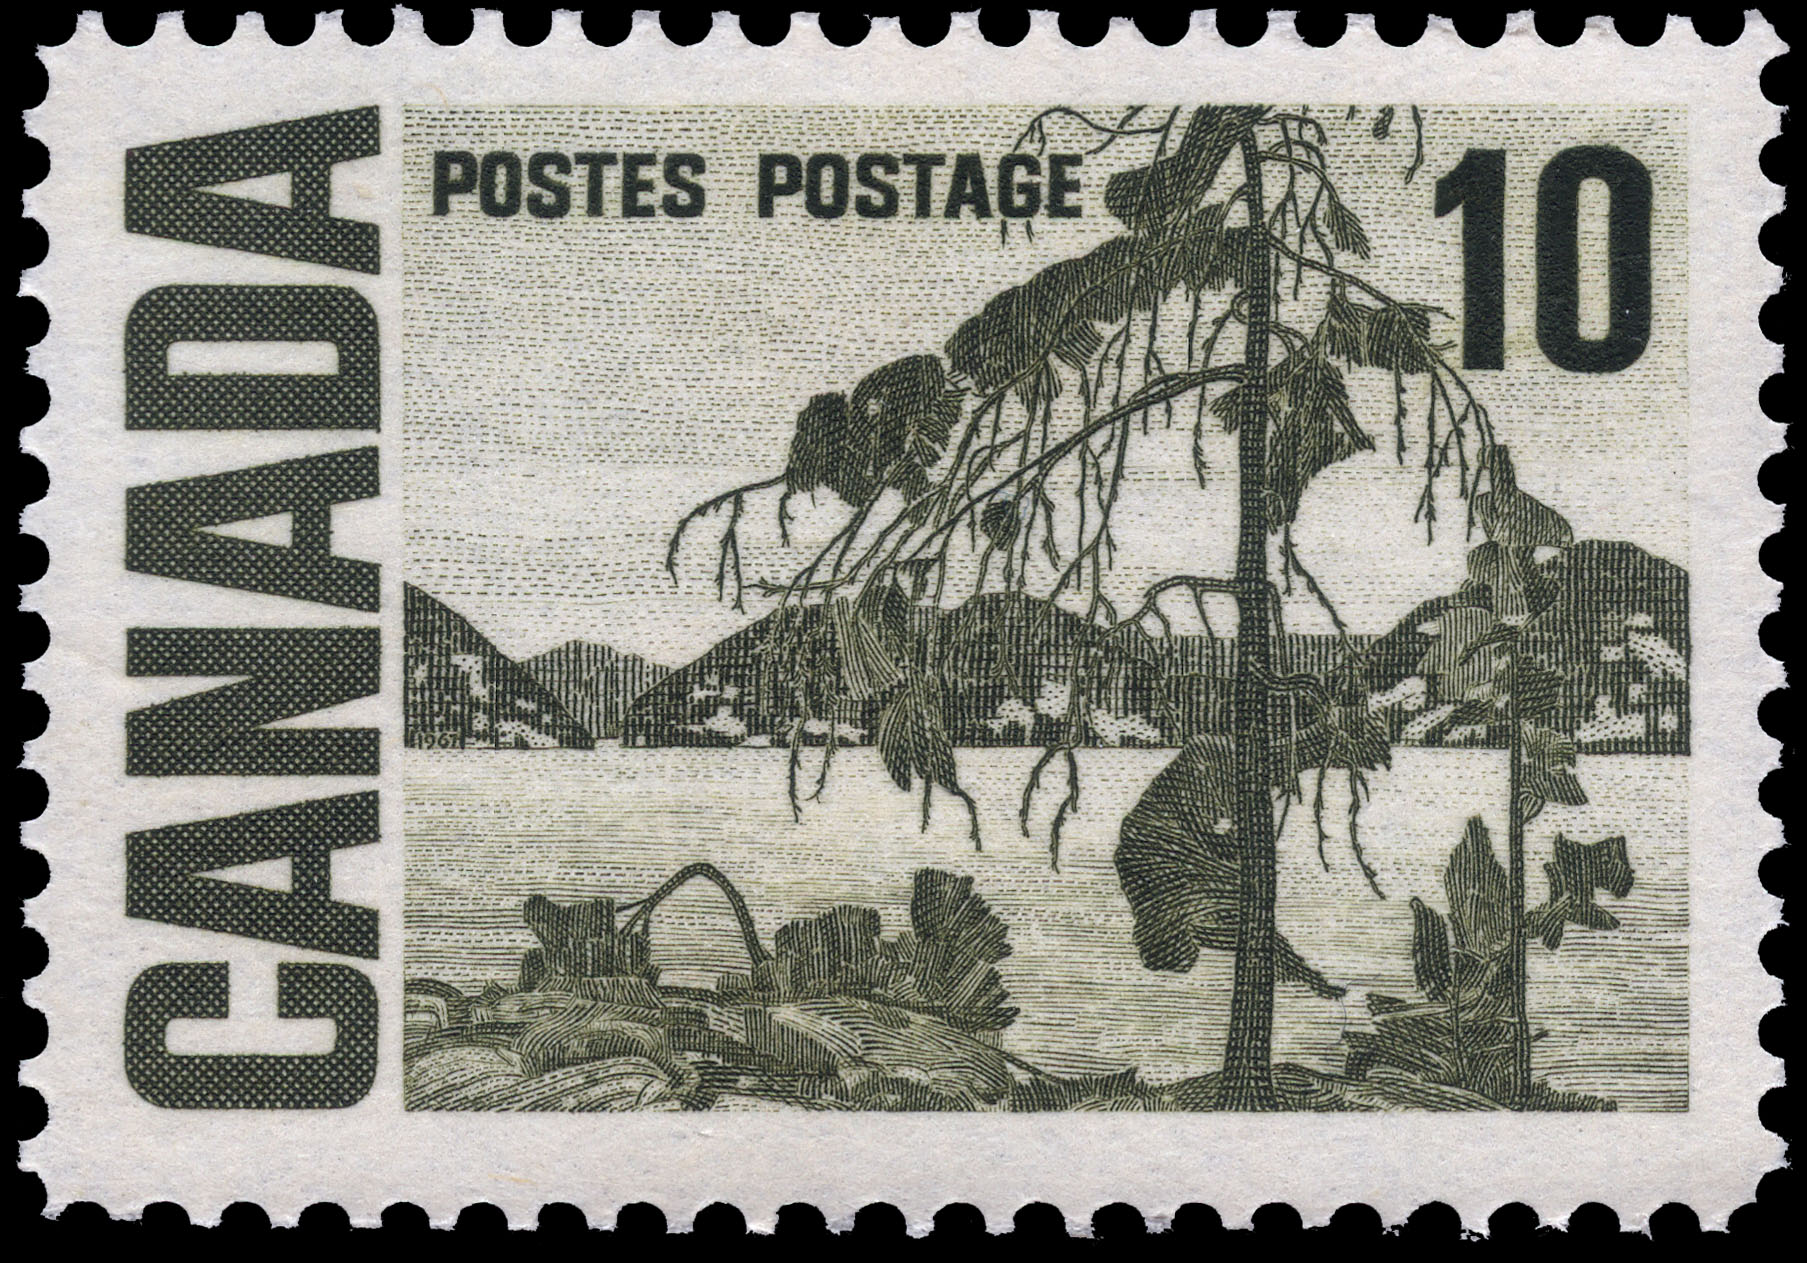 The Jack Pine Canada Postage Stamp